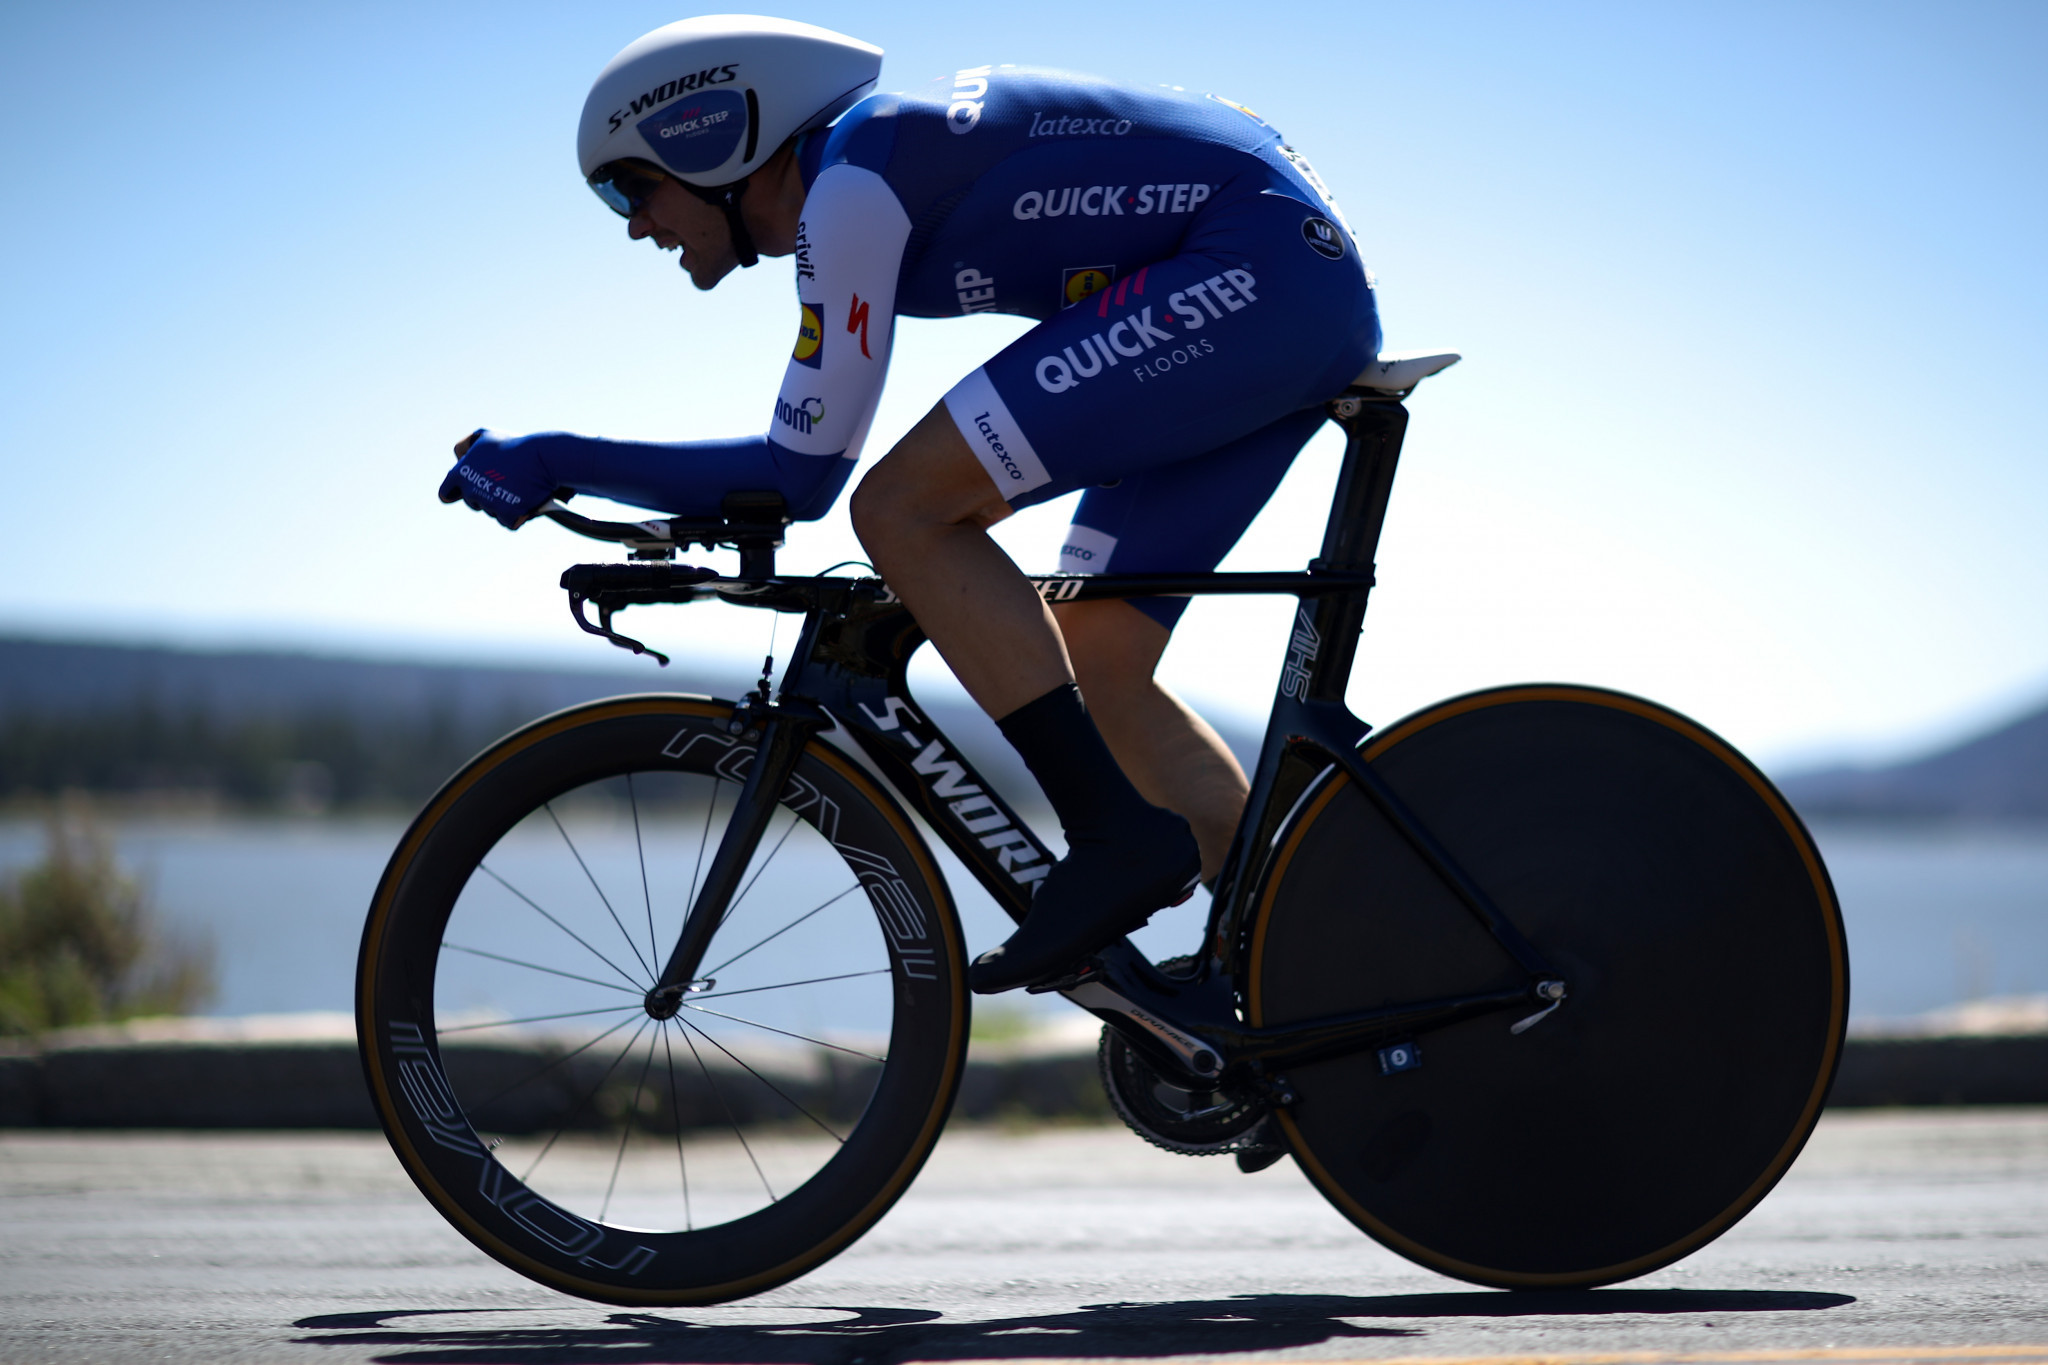 Schachmann braves sleet and snow to earn first UCI World Tour stage win at Volta a Catalunya